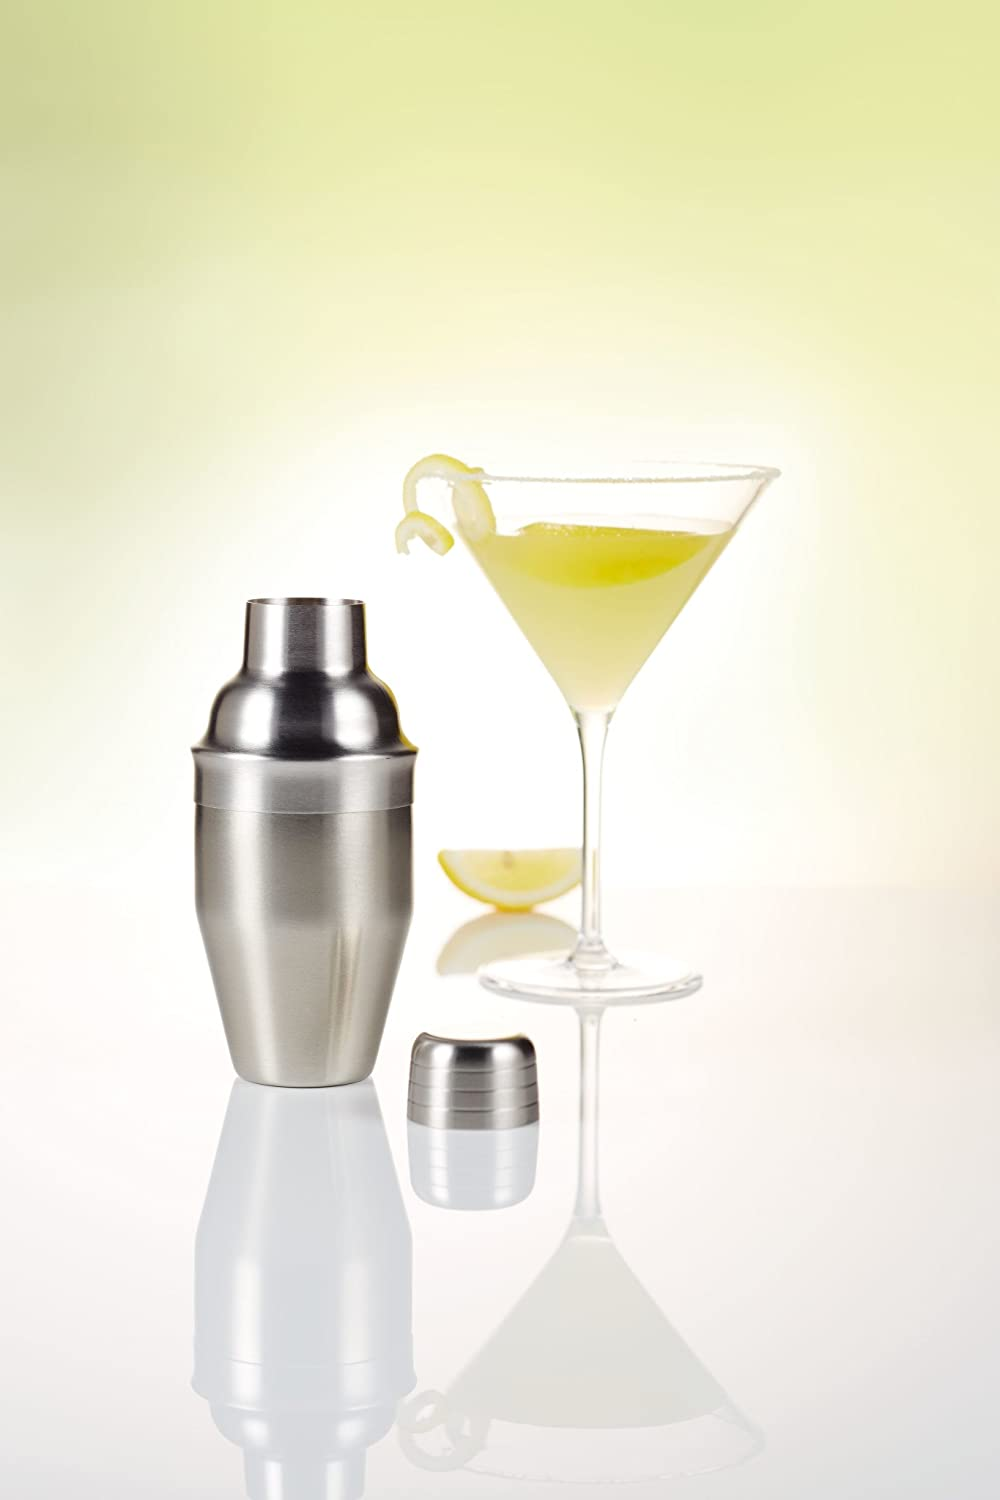 250 ml KitchenCraft BarCraft Mini Cocktail Shaker with Recipe Booklet and Gift Box Brass Finish